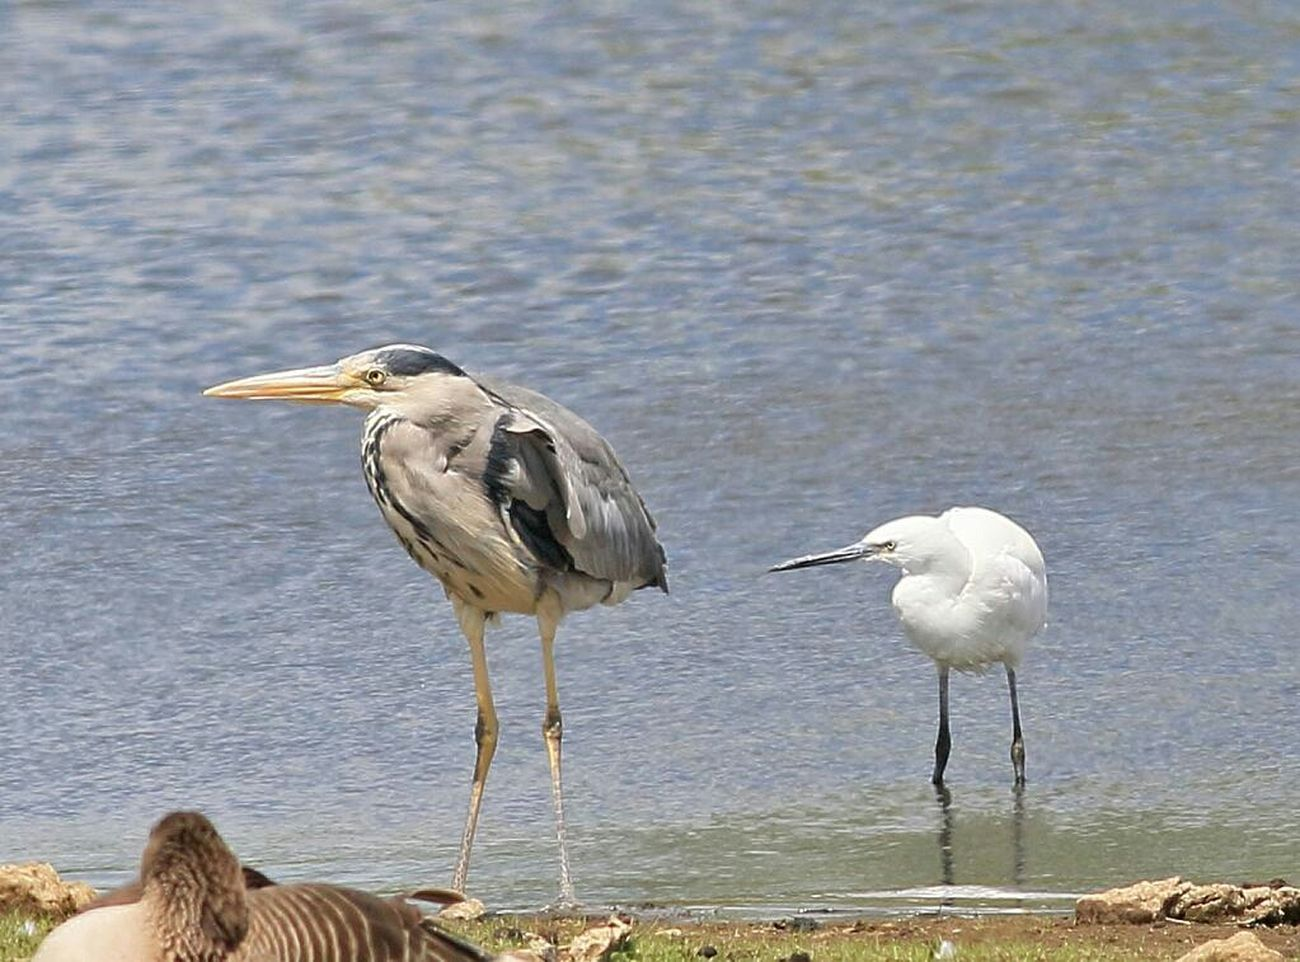 Heron And Little Egret Taking Photos Wildlife Photography Wildlife & Nature Canon7dMK2 Wildlife